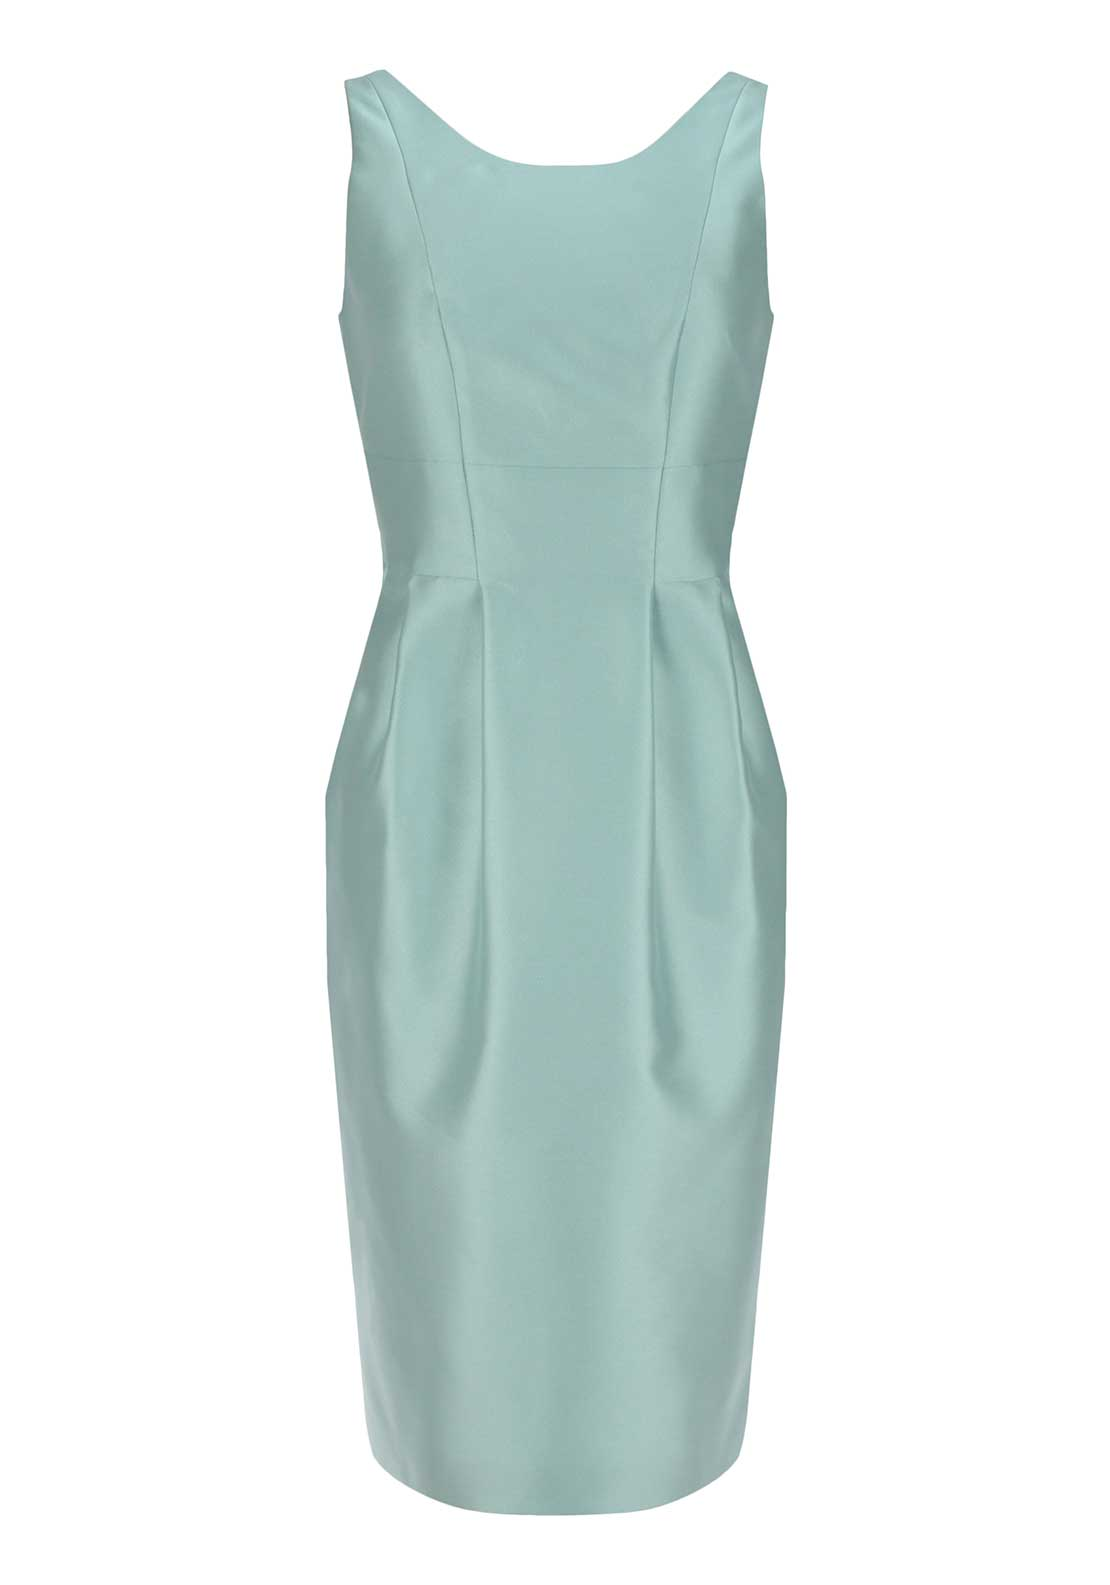 Laura Bernal Satin Pencil Dress Mint Green